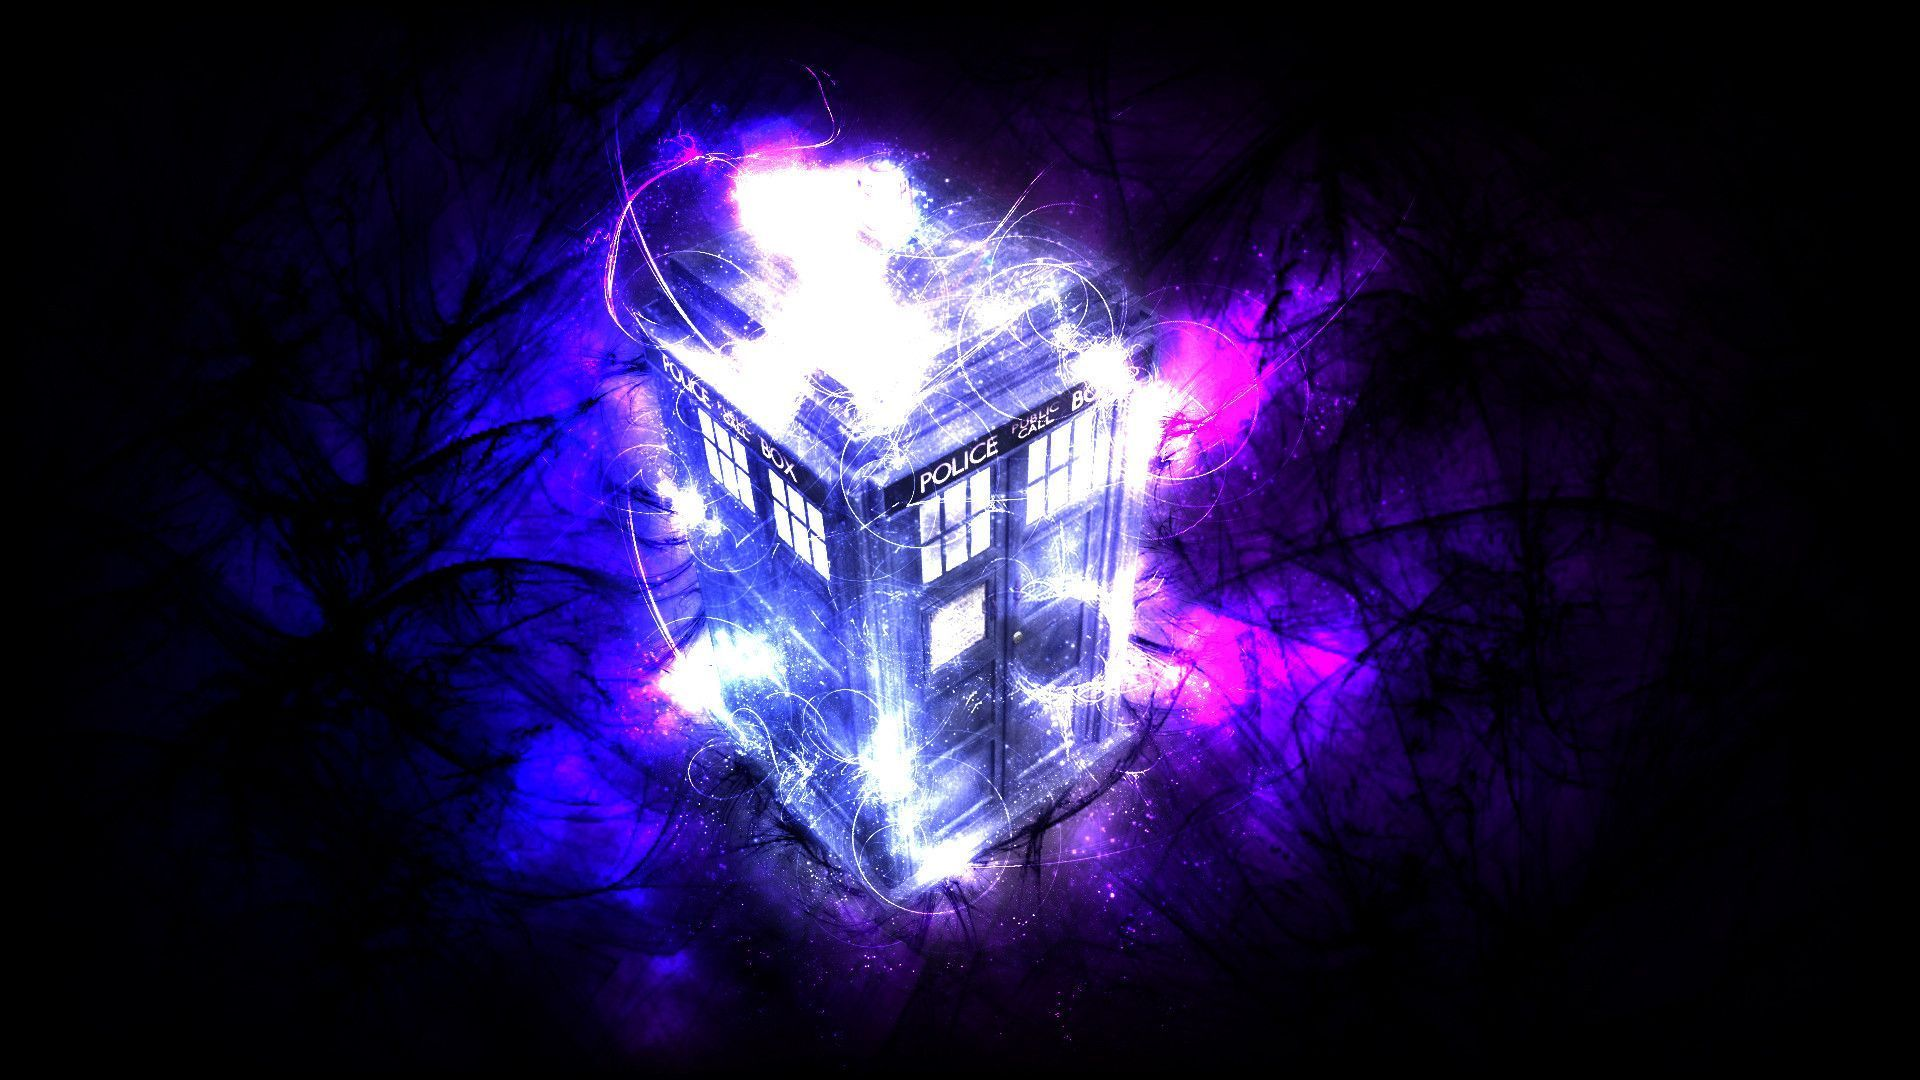 Dr. Who HD Wallpaper Pack | Vidiny